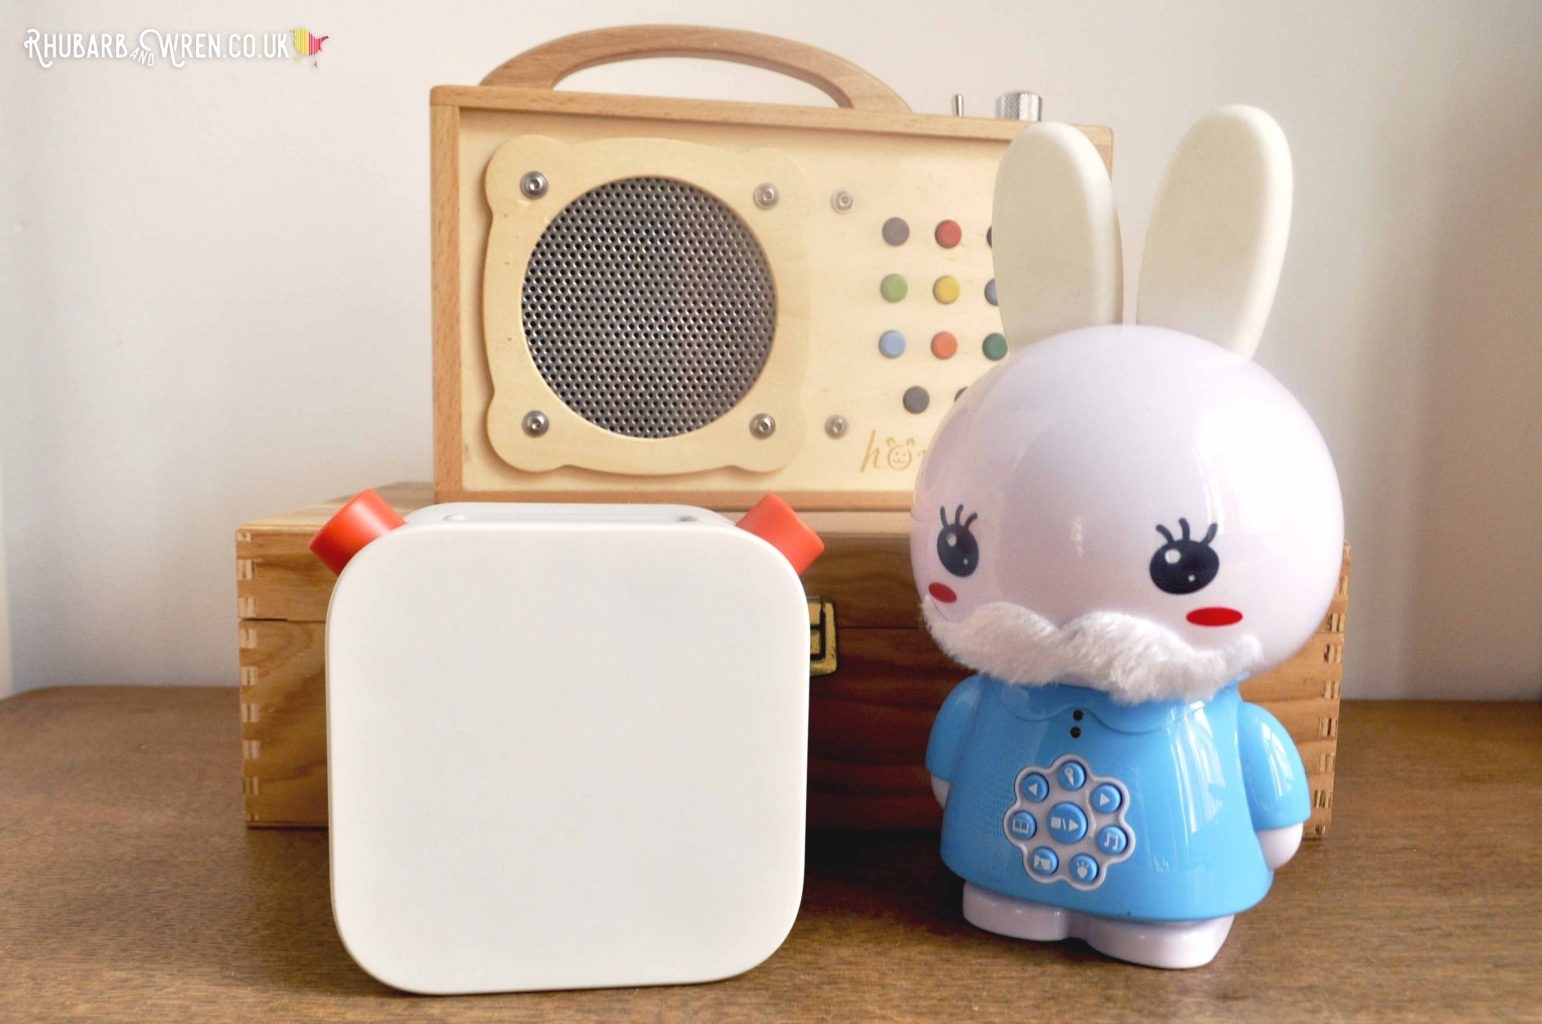 Discover the best audio devices for children in our list of our absolute favourites.